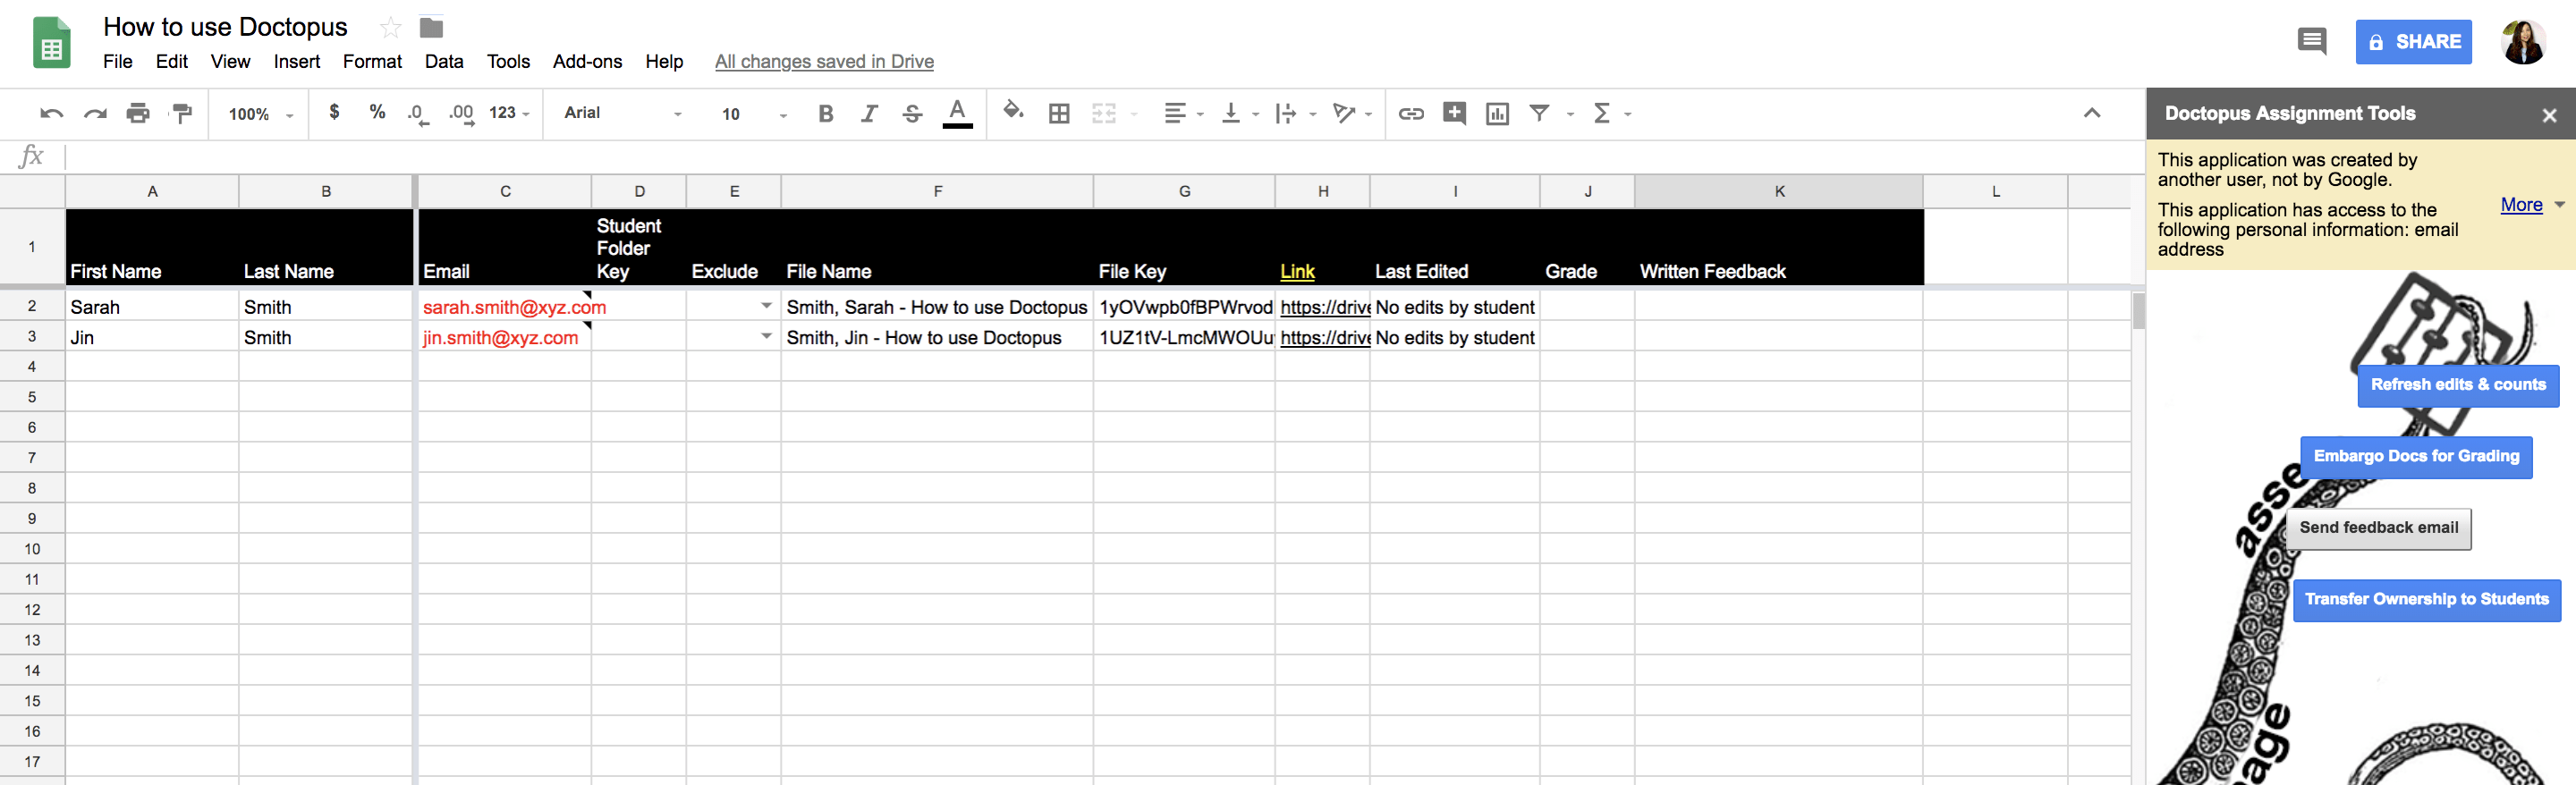 How to use the Doctopus add-on for Google Sheets